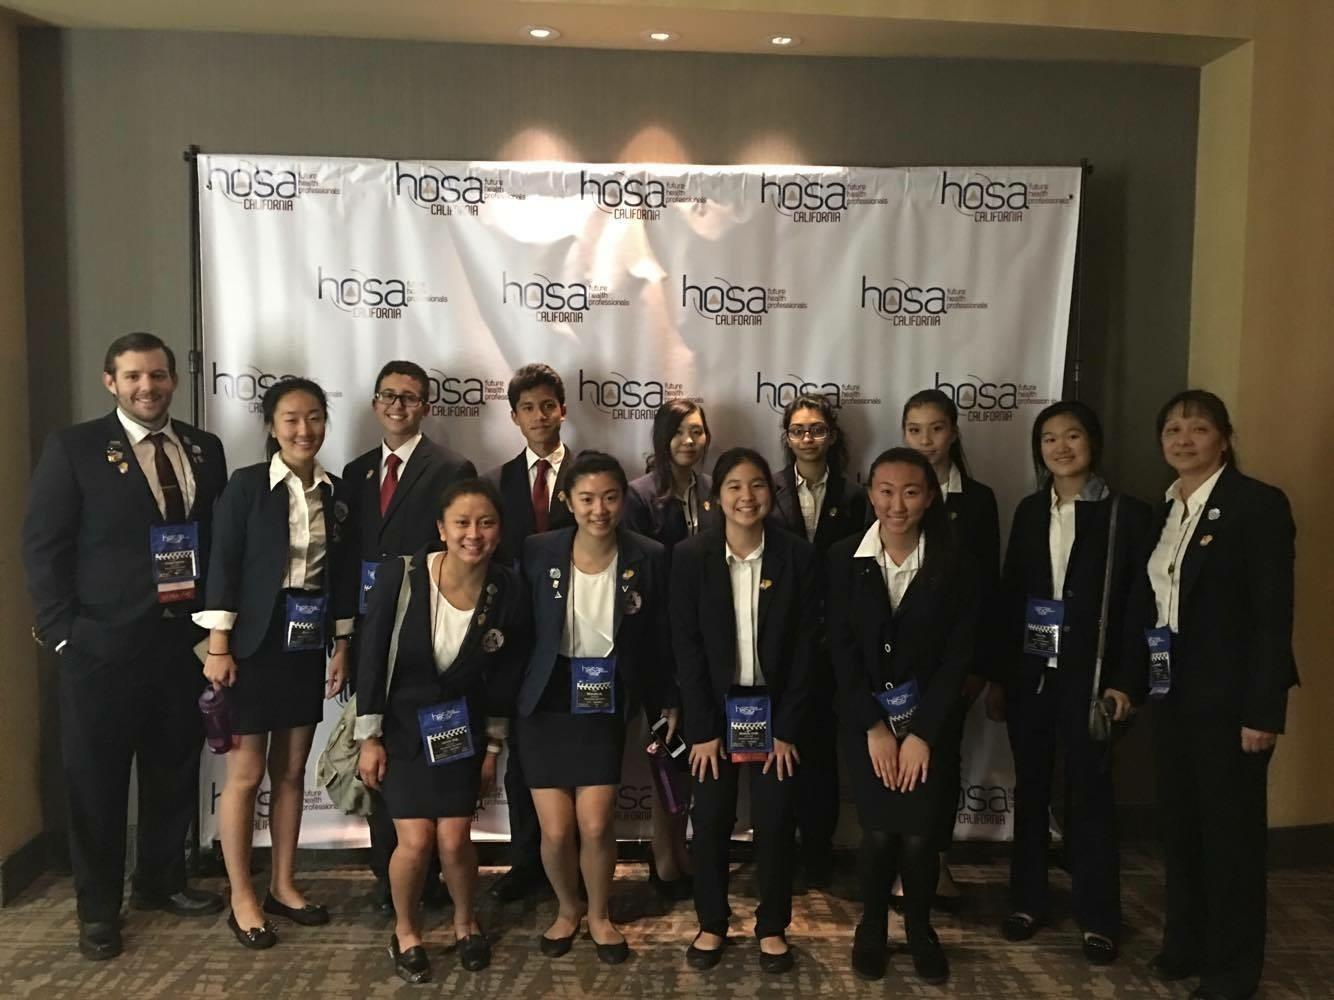 Members of HOSA competed at the State Leadership Conference at the Merit Hotel at Anaheim this past weekend.